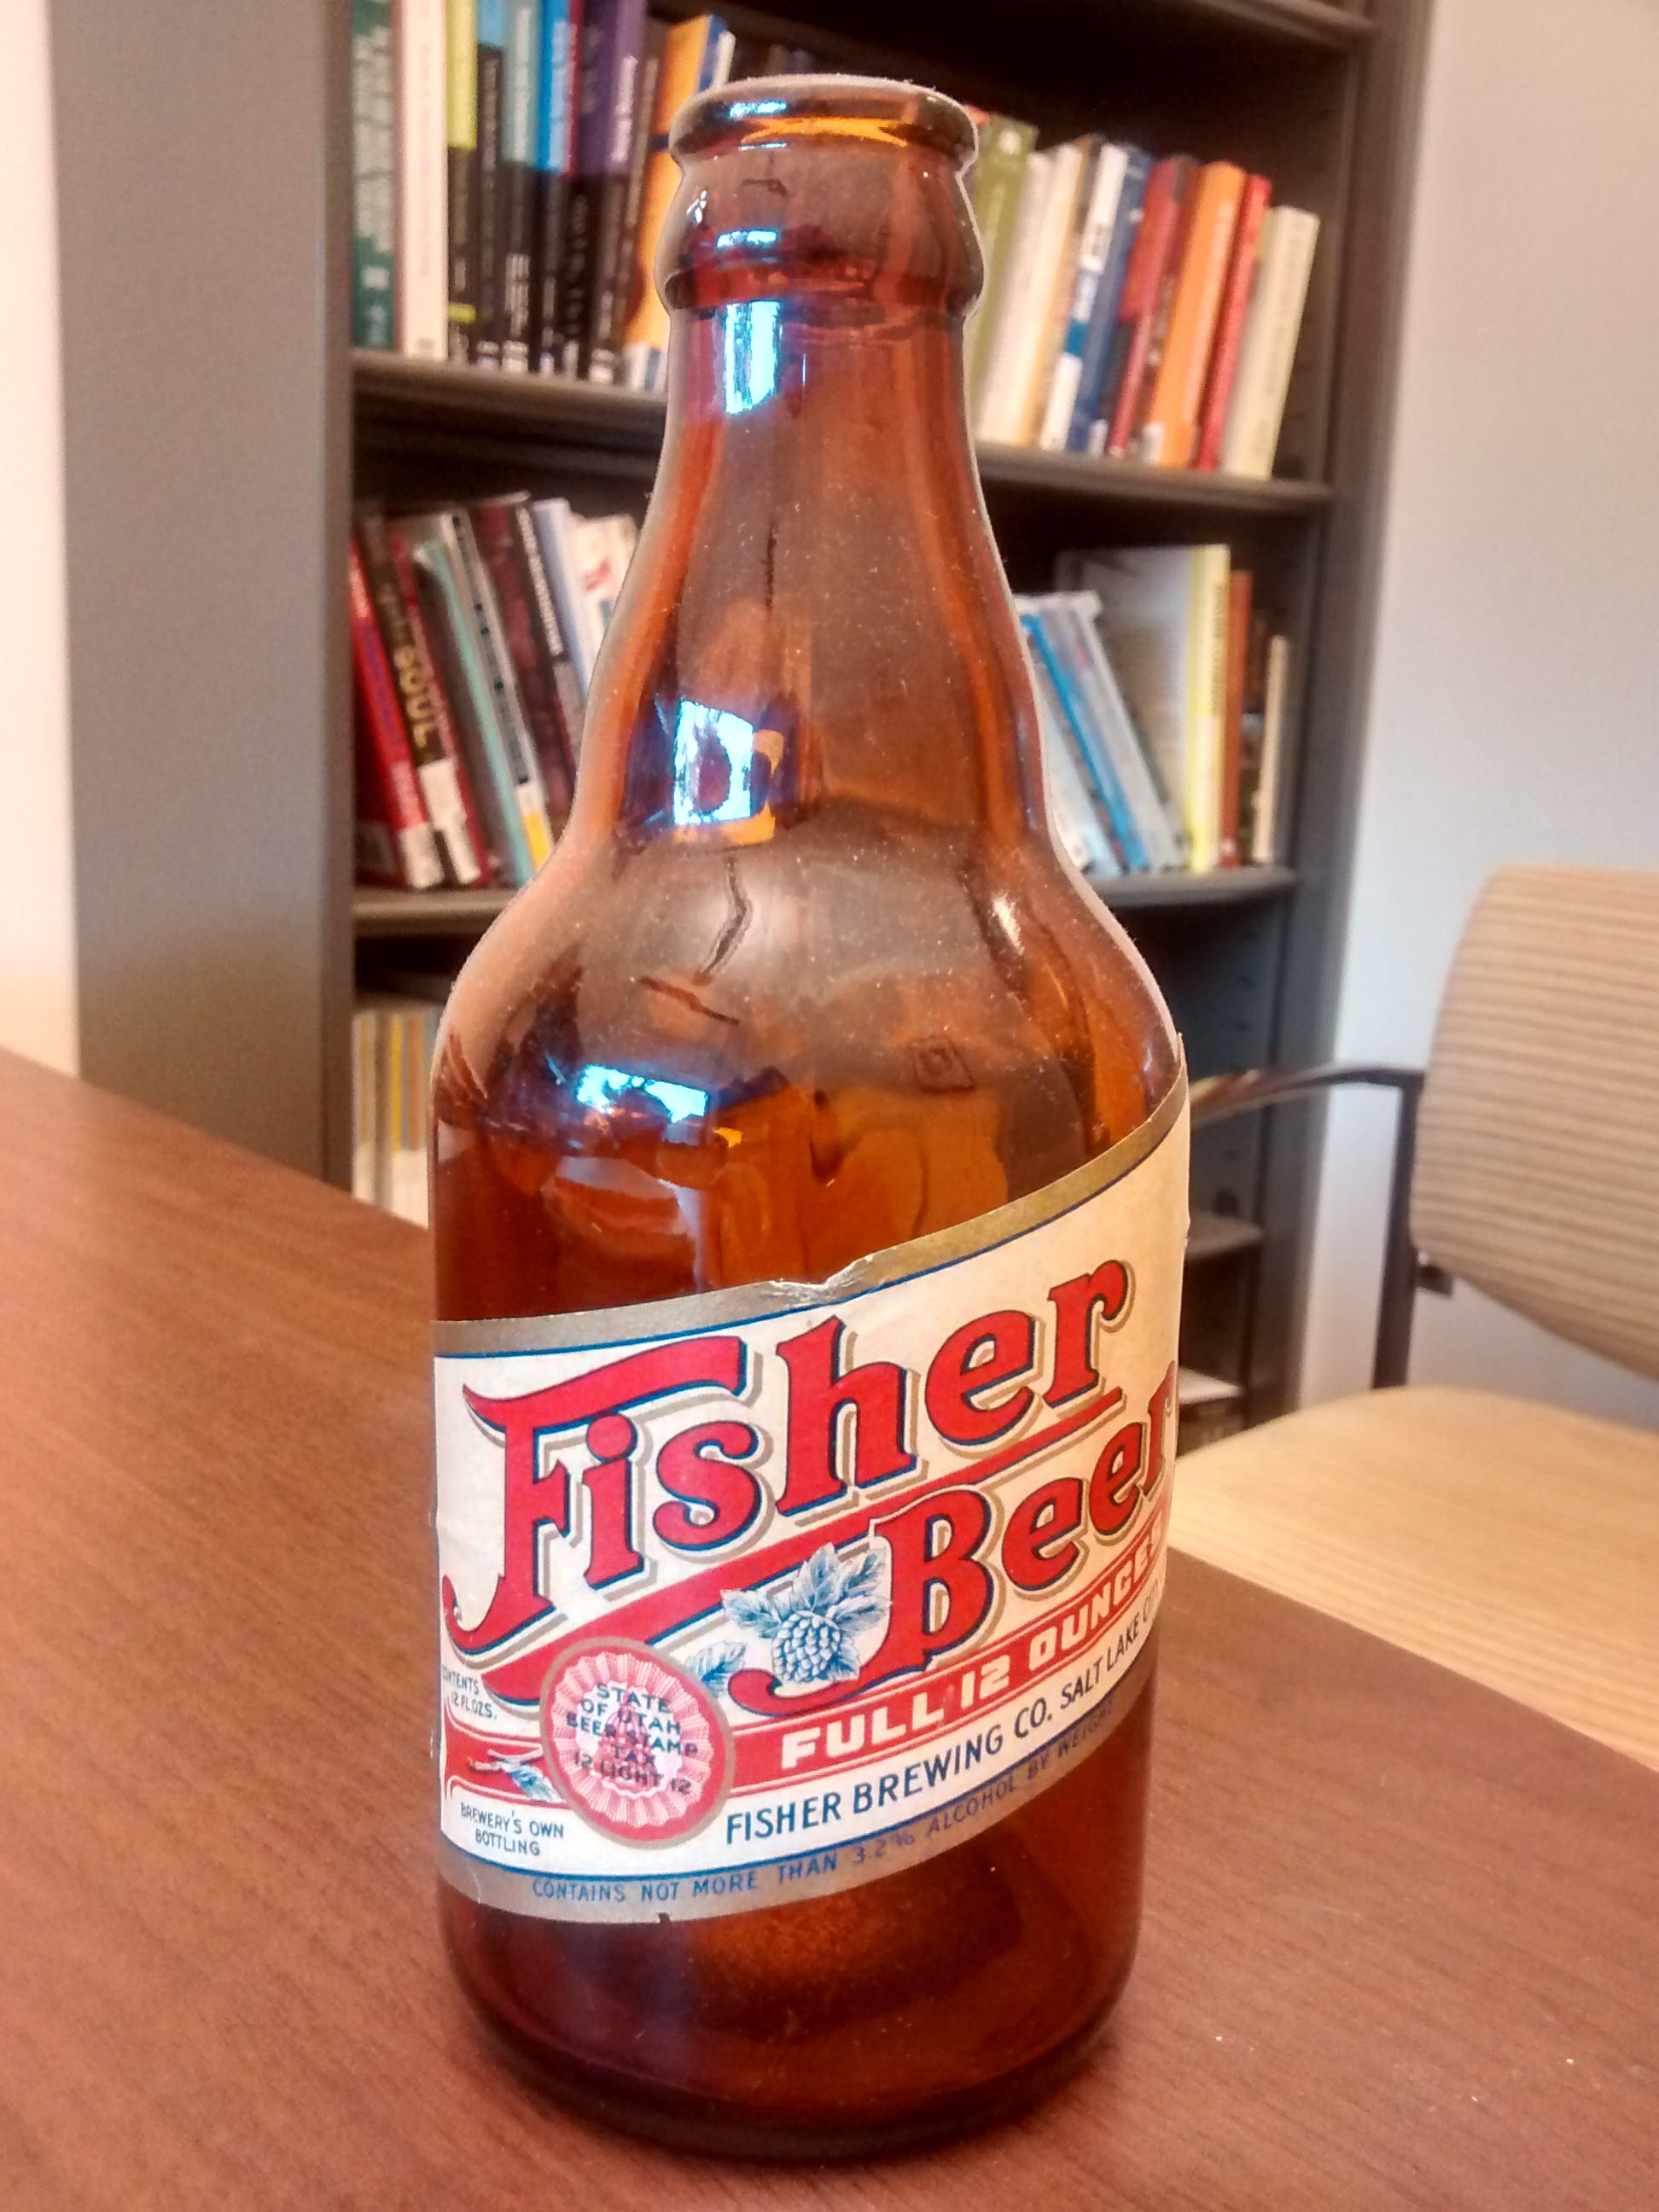 A picture of a beer bottle pulled from the attic: Fisher Beer.